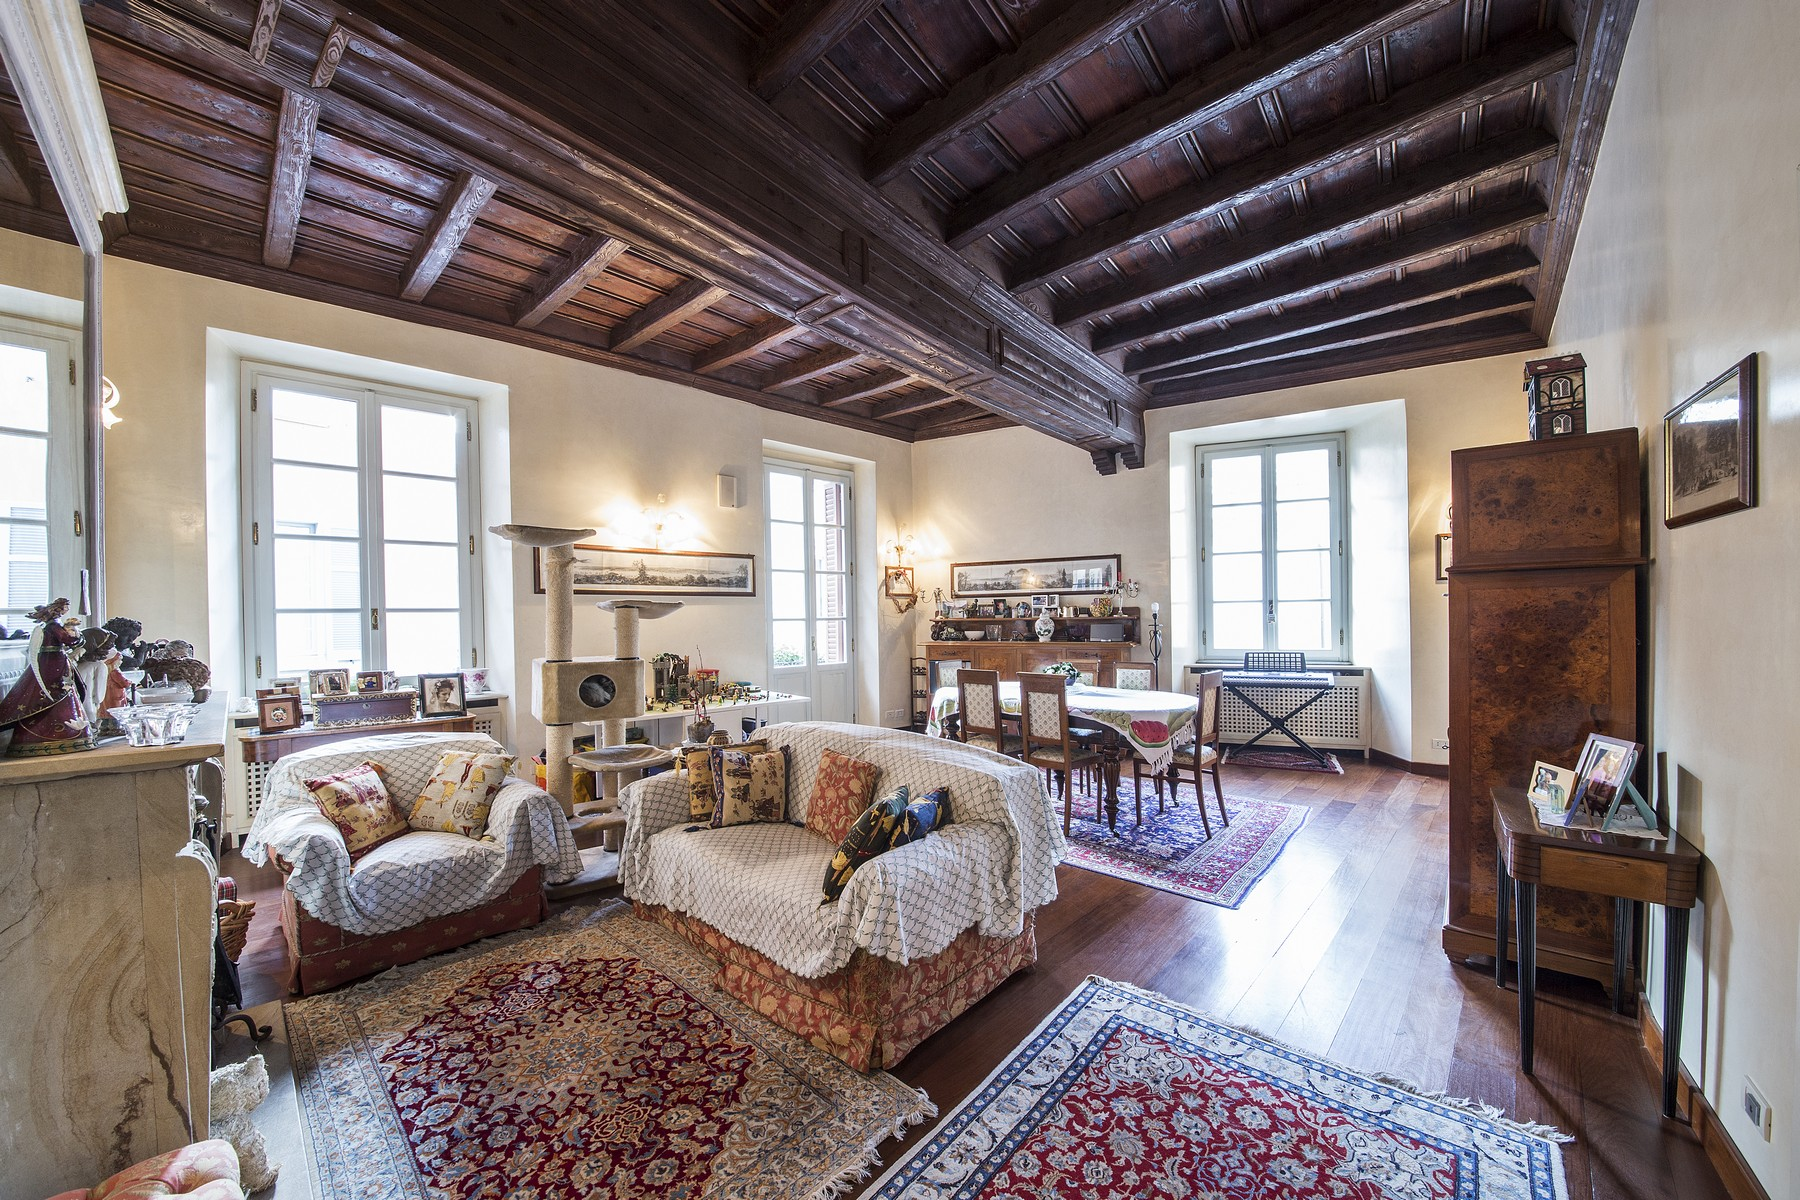 Appartement pour l Vente à Wonderful apartment in prestigious building in the center of Como Via Bonanomi Como, Como 22100 Italie